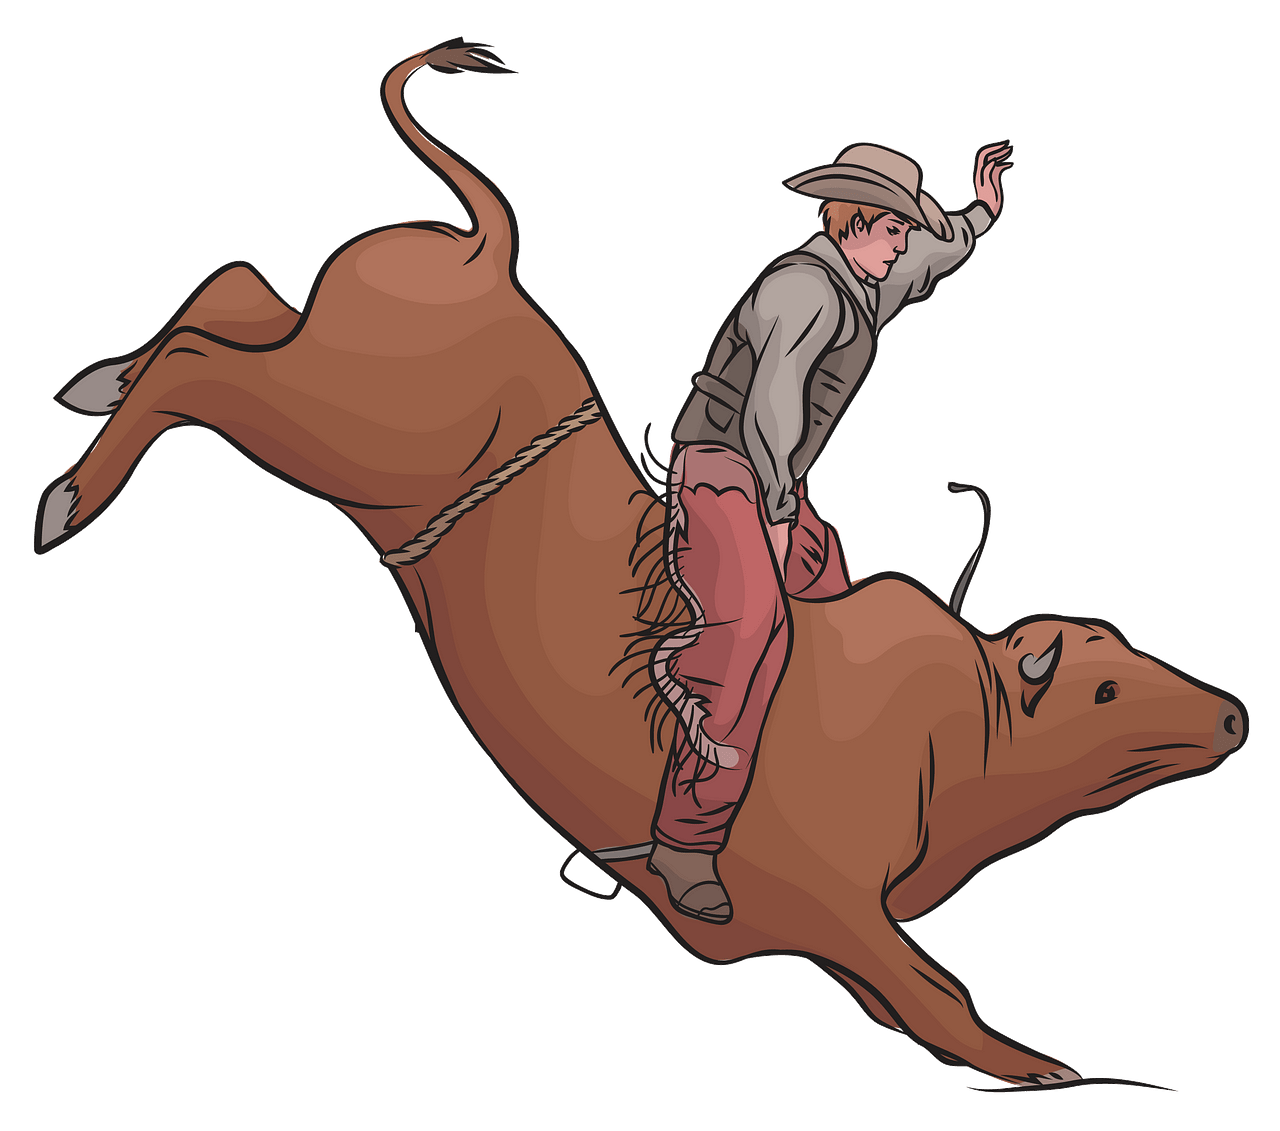 Cowboy Riding a Bull clipart. Free download..